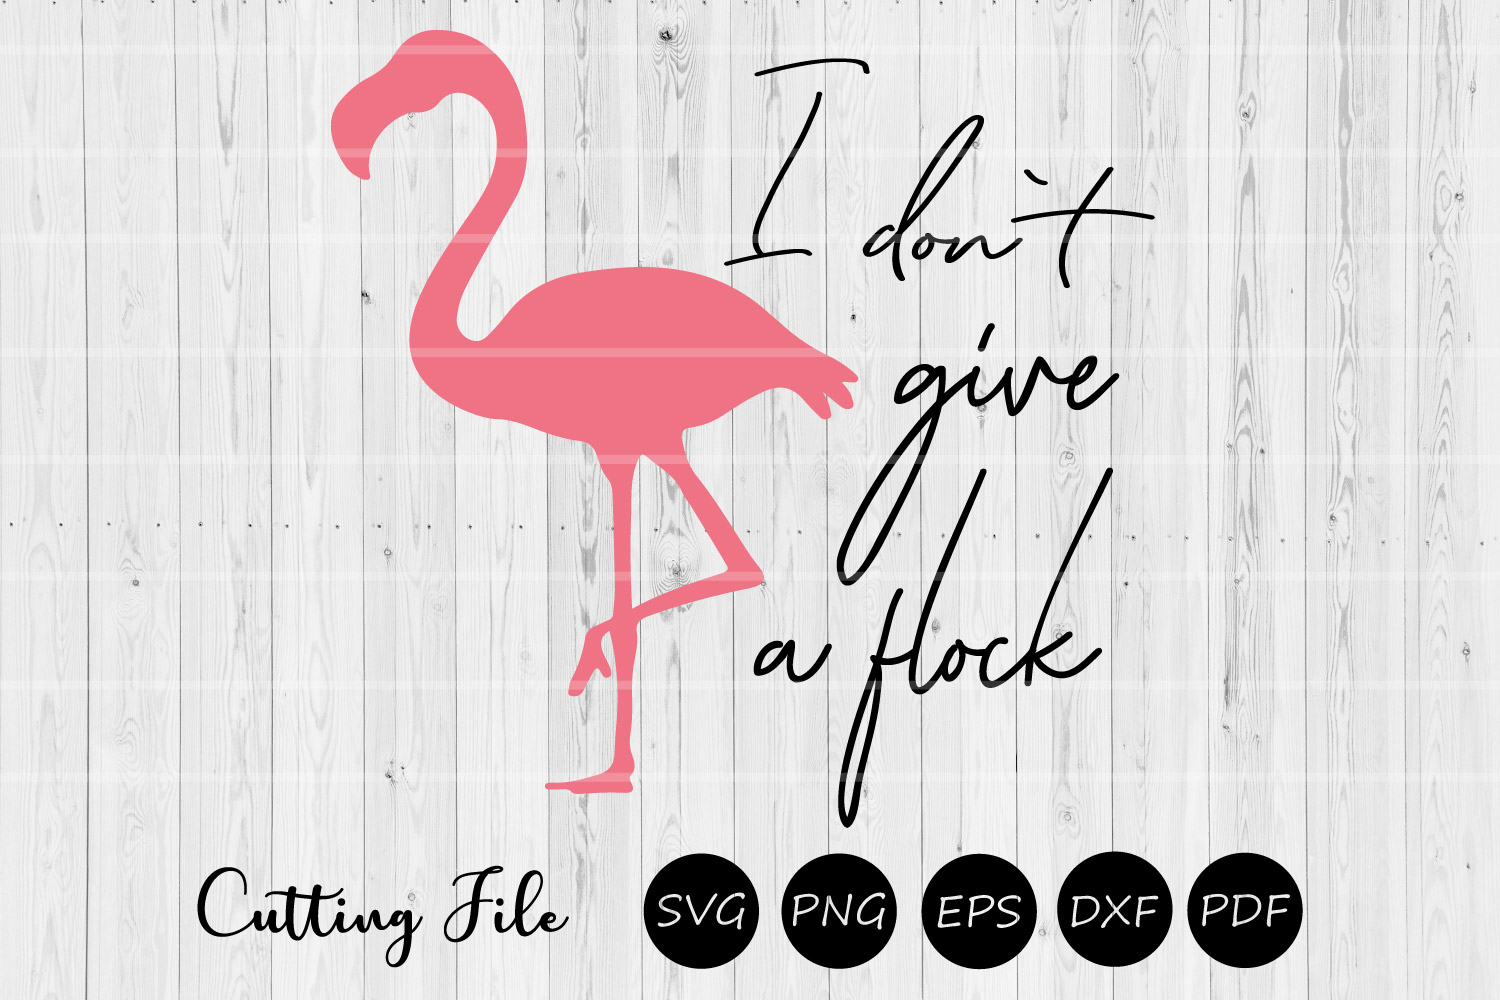 I don't give a flock | SVG Cutting file | Cricut, Silhouette example image 1